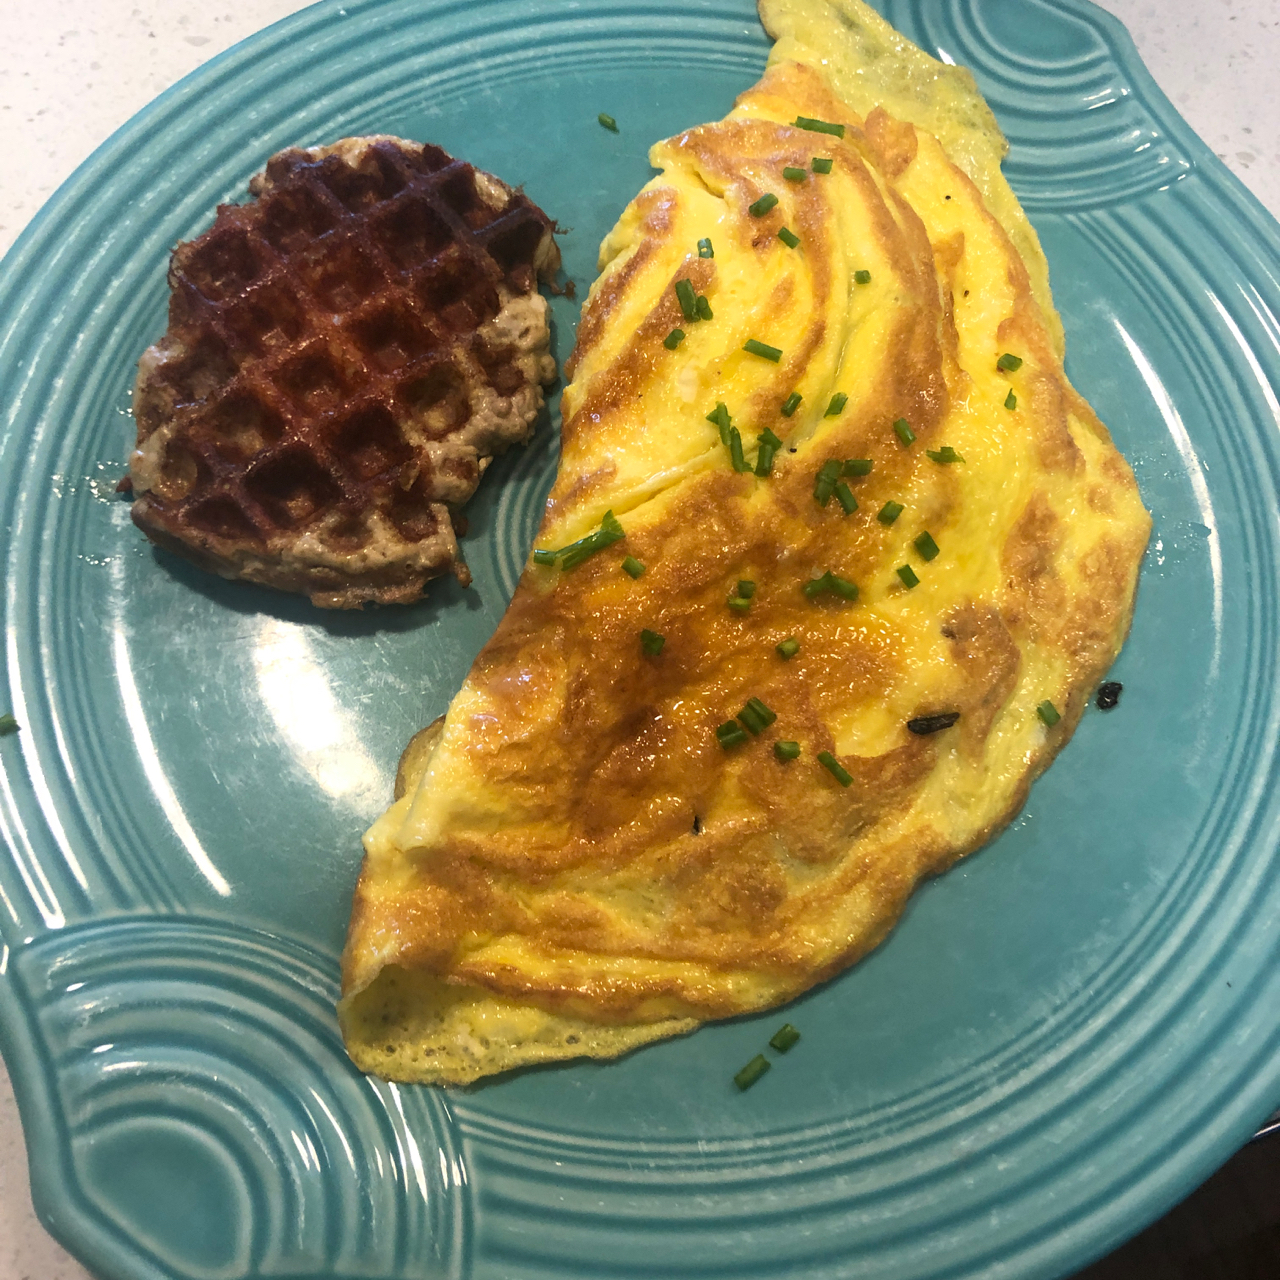 A Carnivore Breakfast of Waffle and Egg Omelet before water only fast